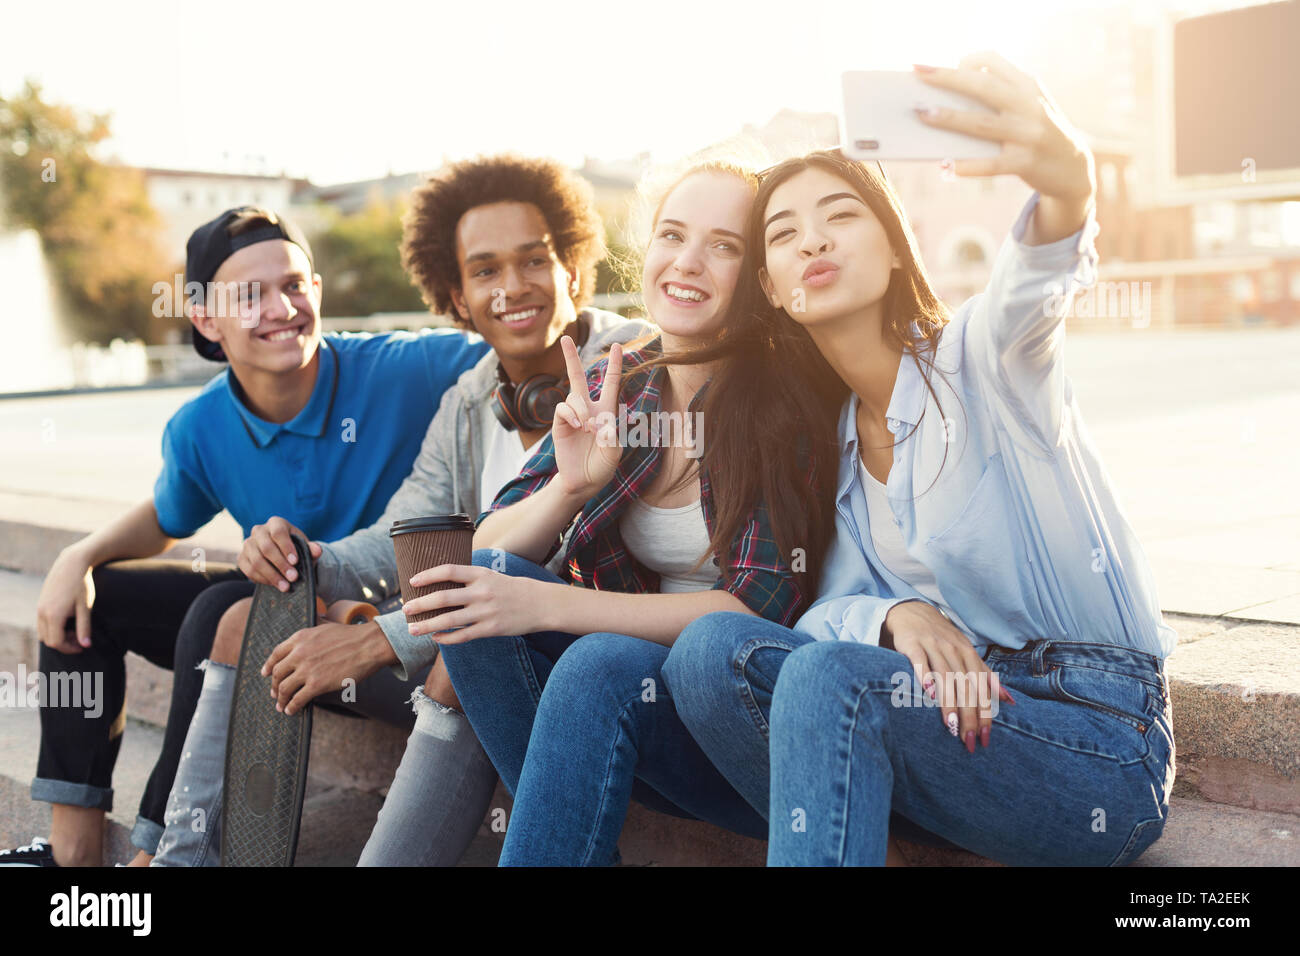 Group of multiethnic teenagers taking selfie, sitting on stairs - Stock Image